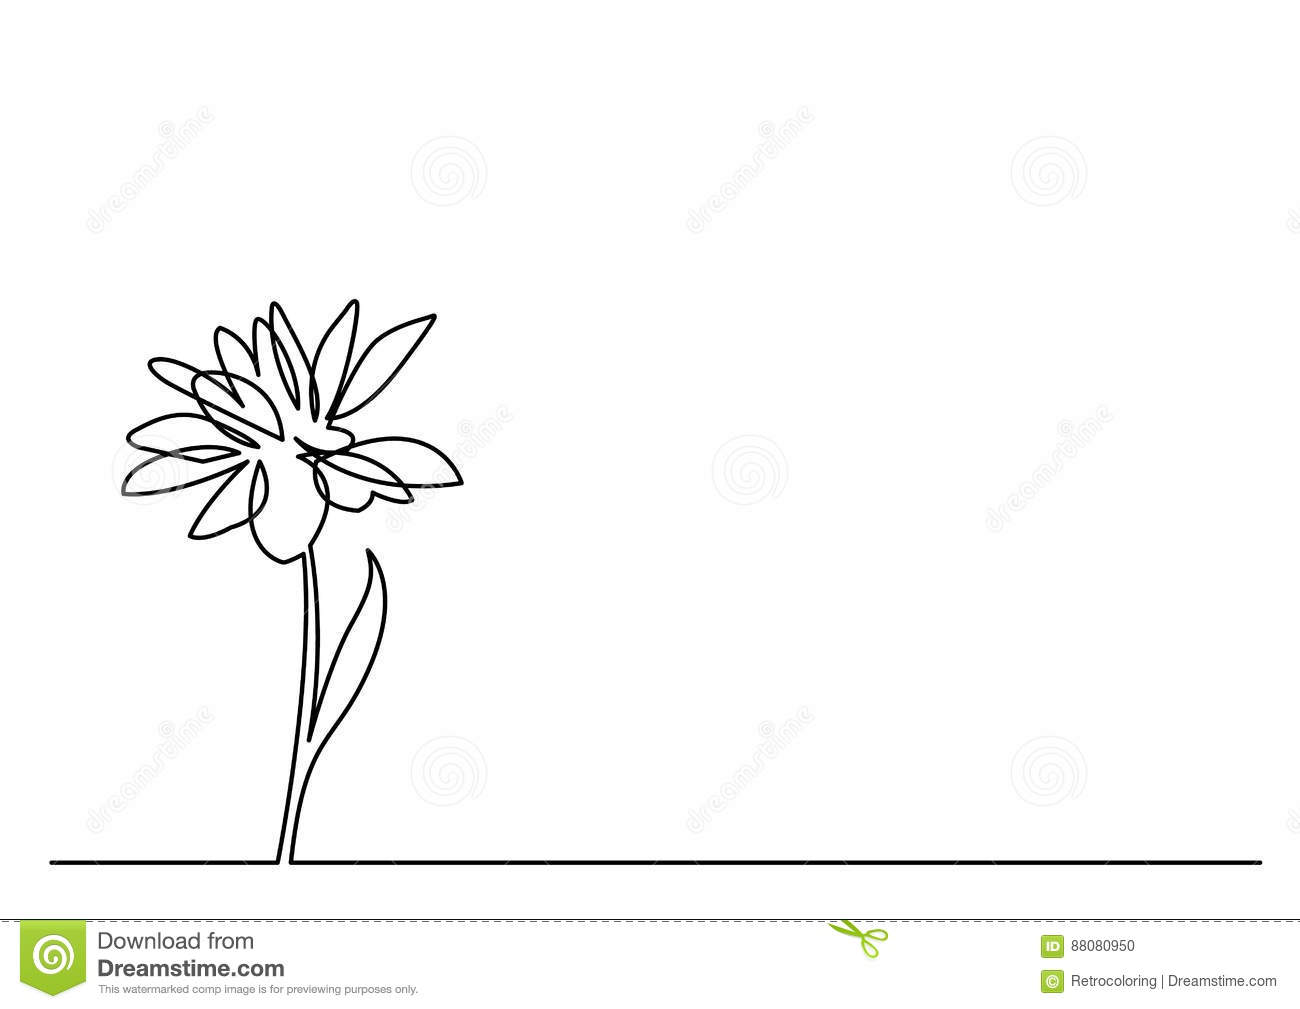 Dessin Au Trait Continu De Belle Fleur Illustration De